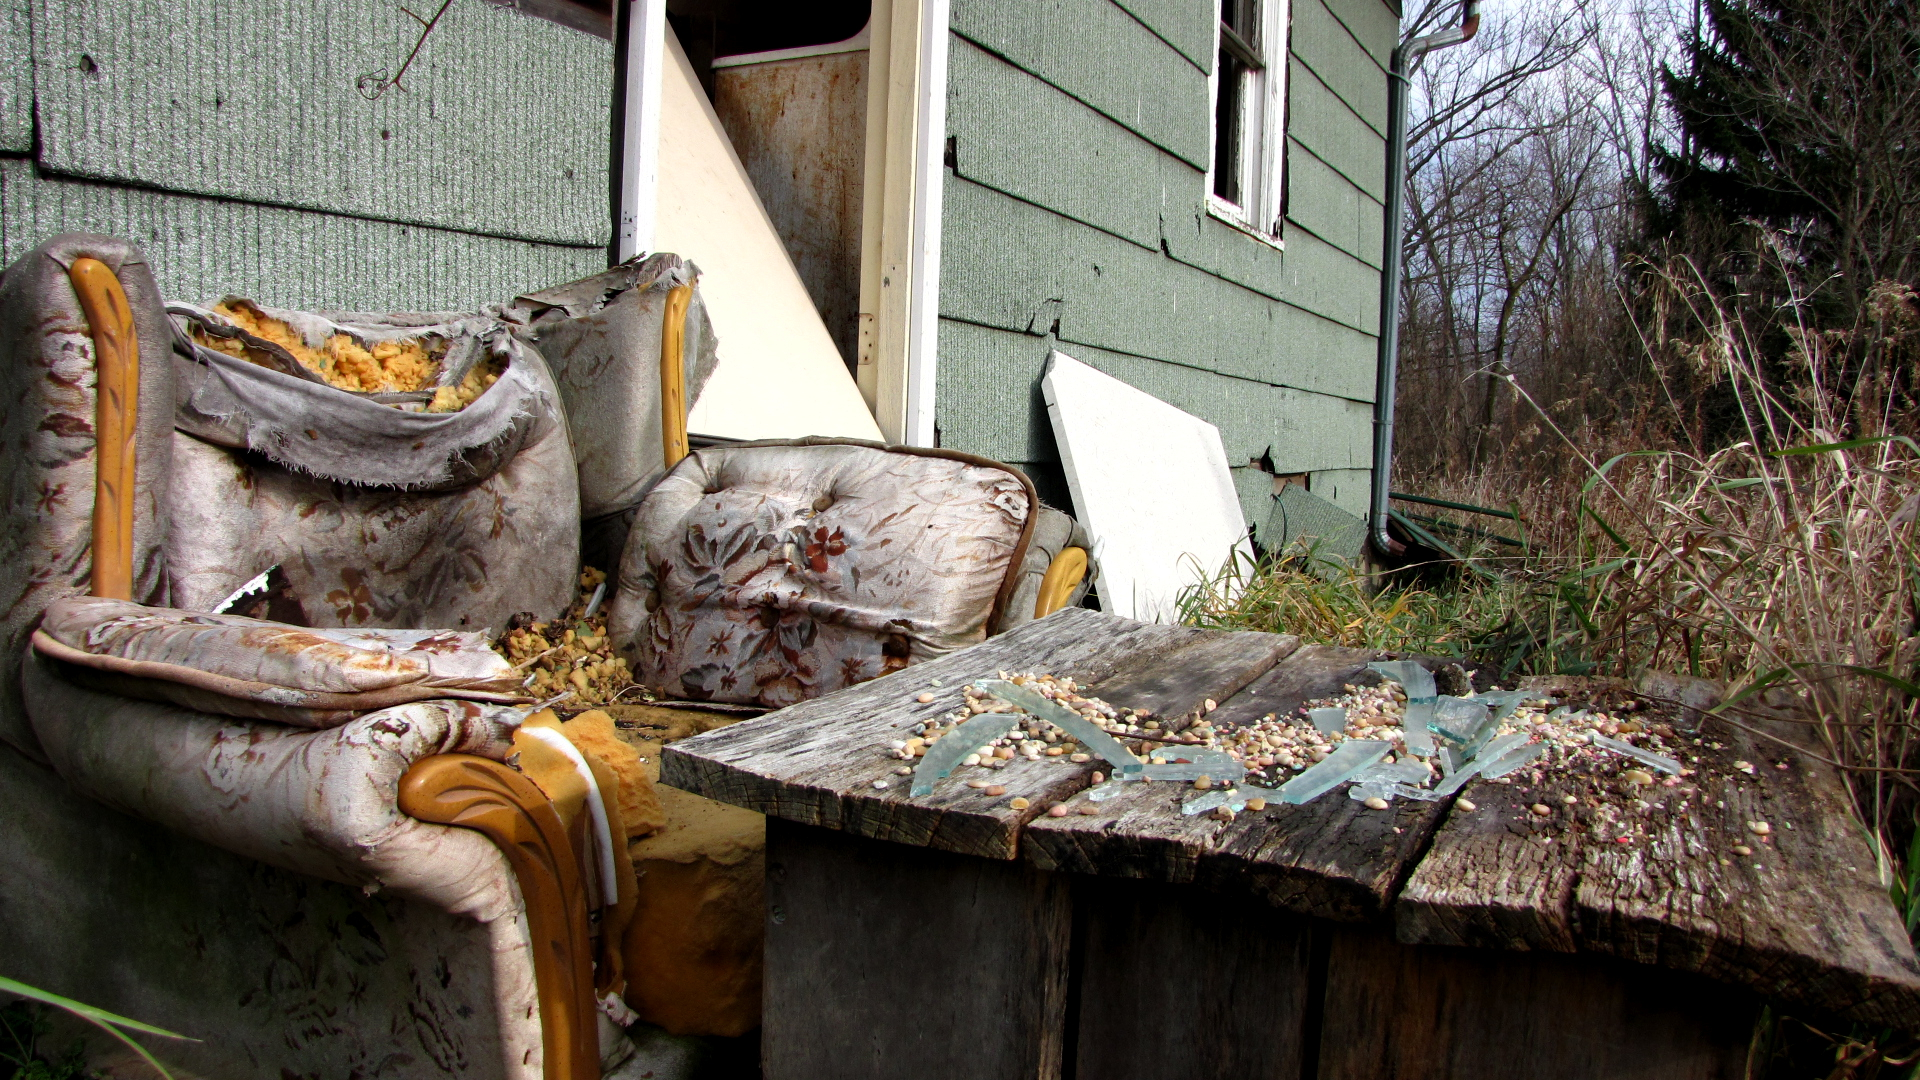 Broken chair in front of abandoned house